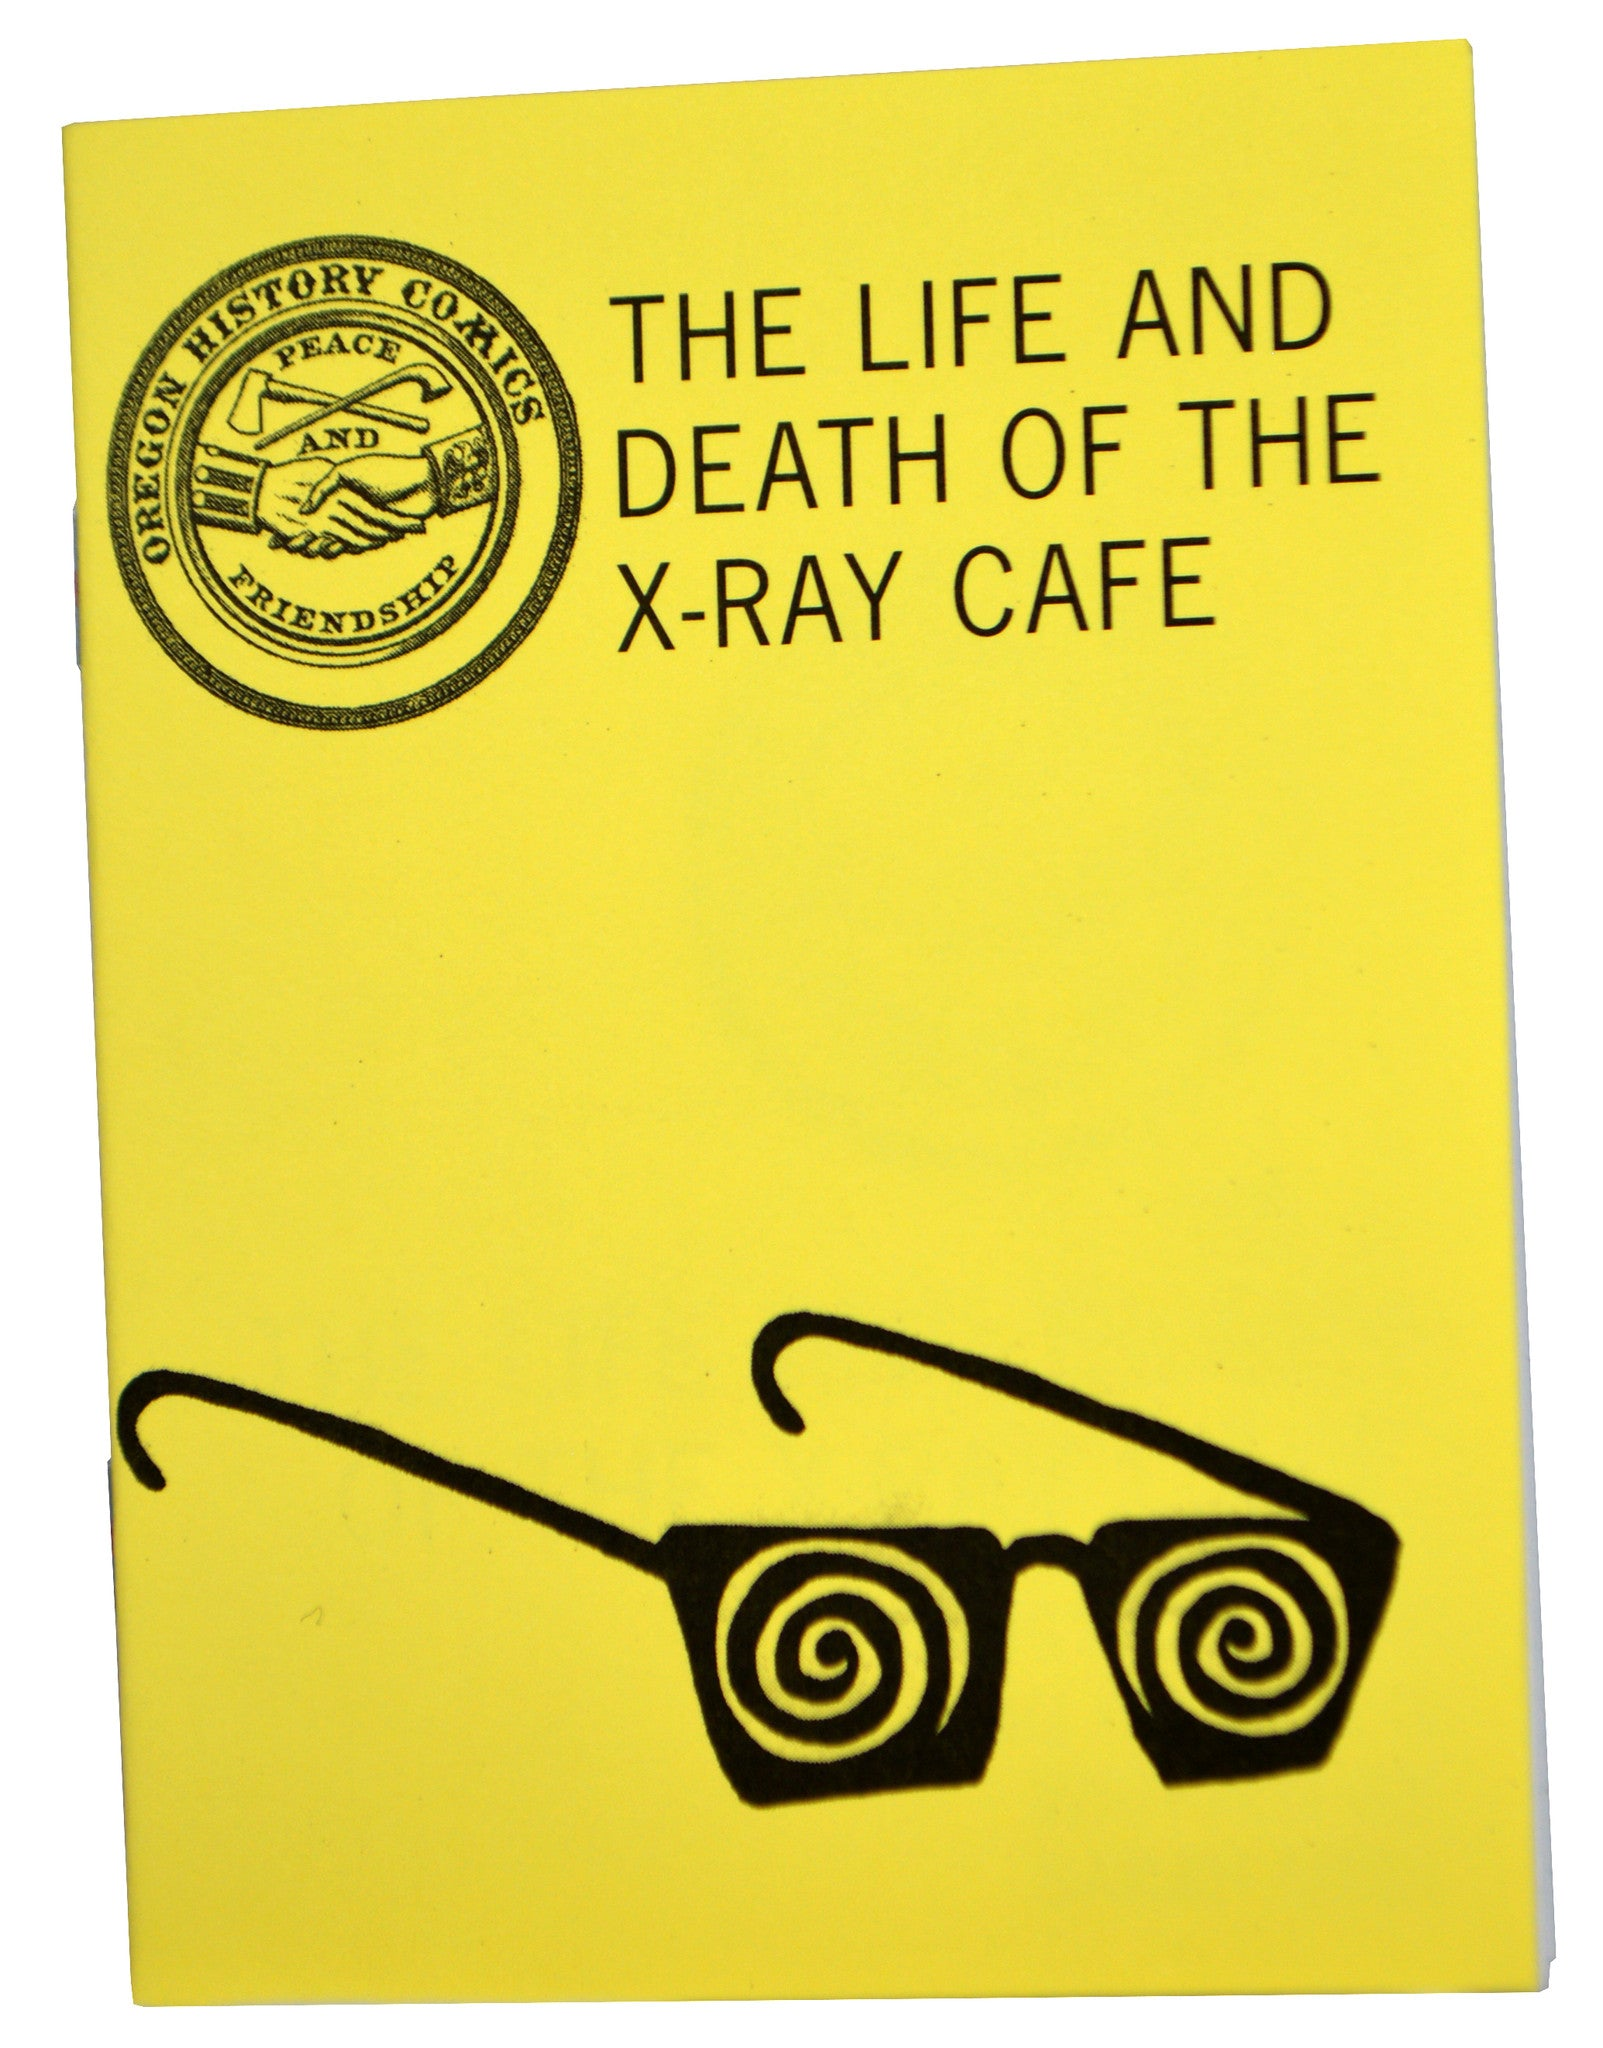 Oregon History Comics 2: Life and Death of the X-Ray Cafe